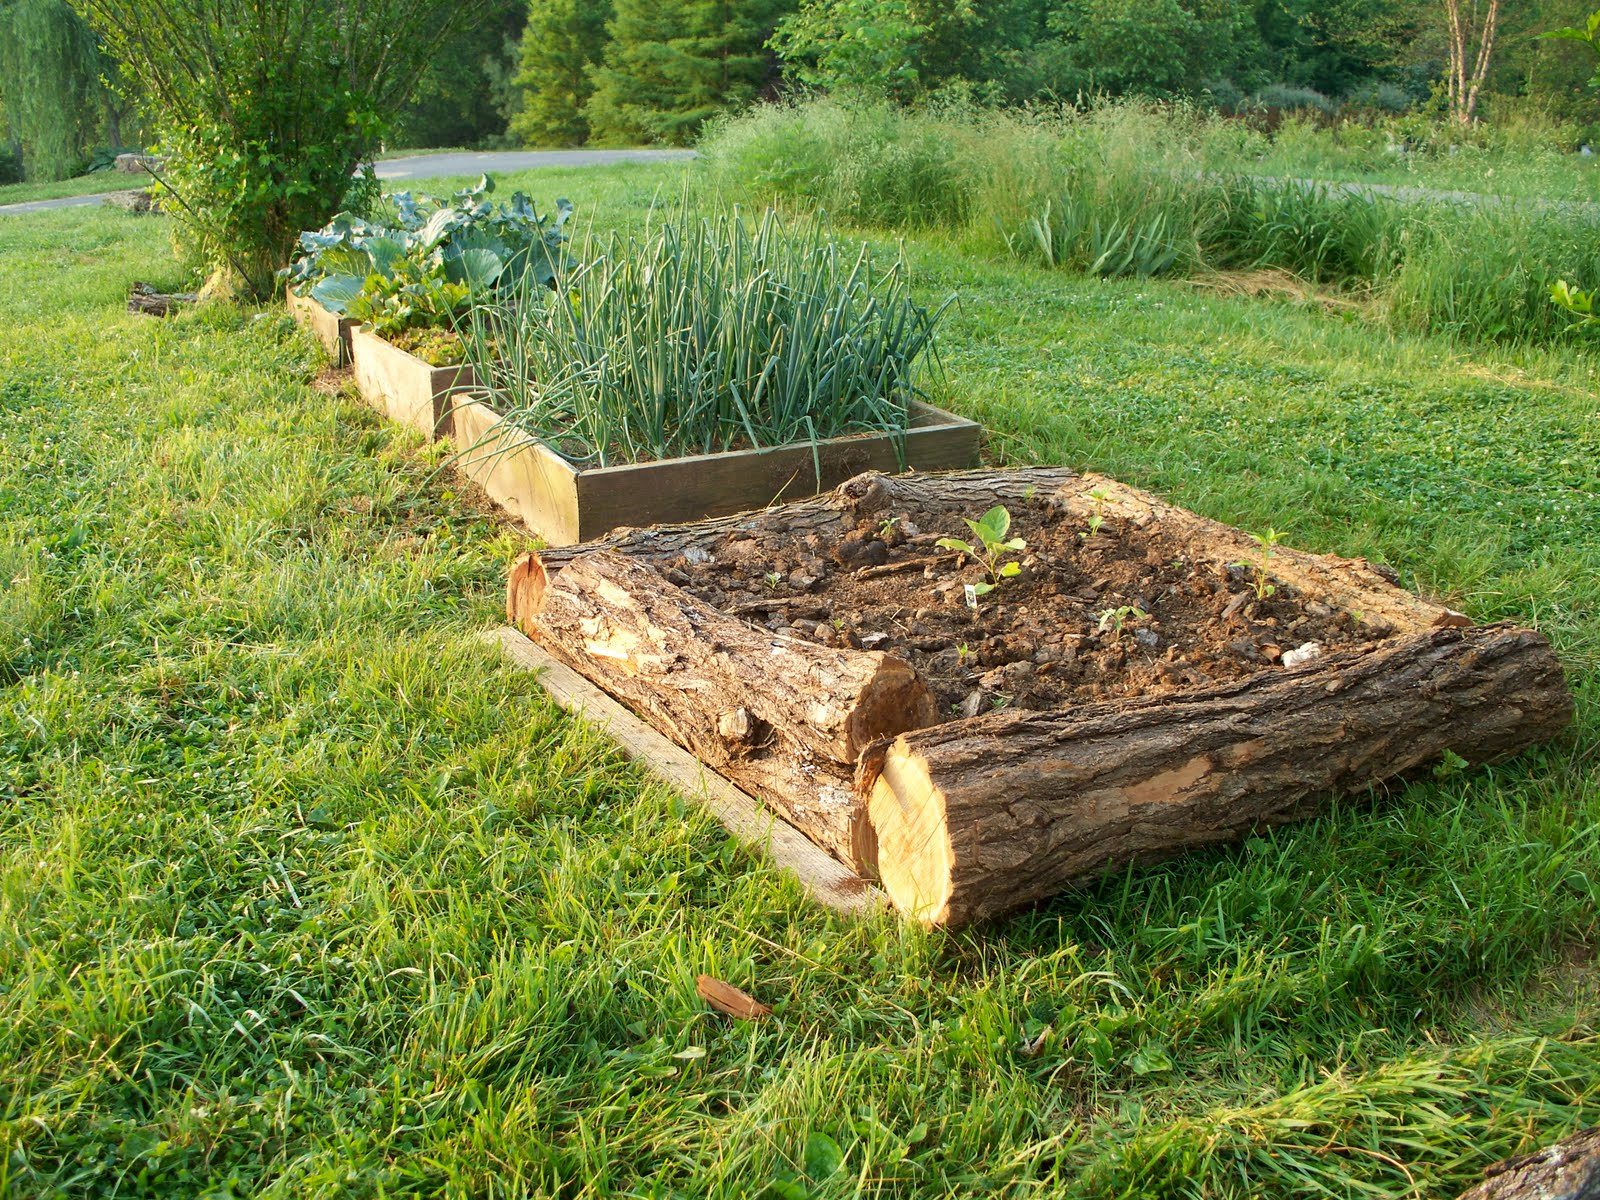 Landscaping With Wood Logs : Vegans living off the land free ways to decorate your yard